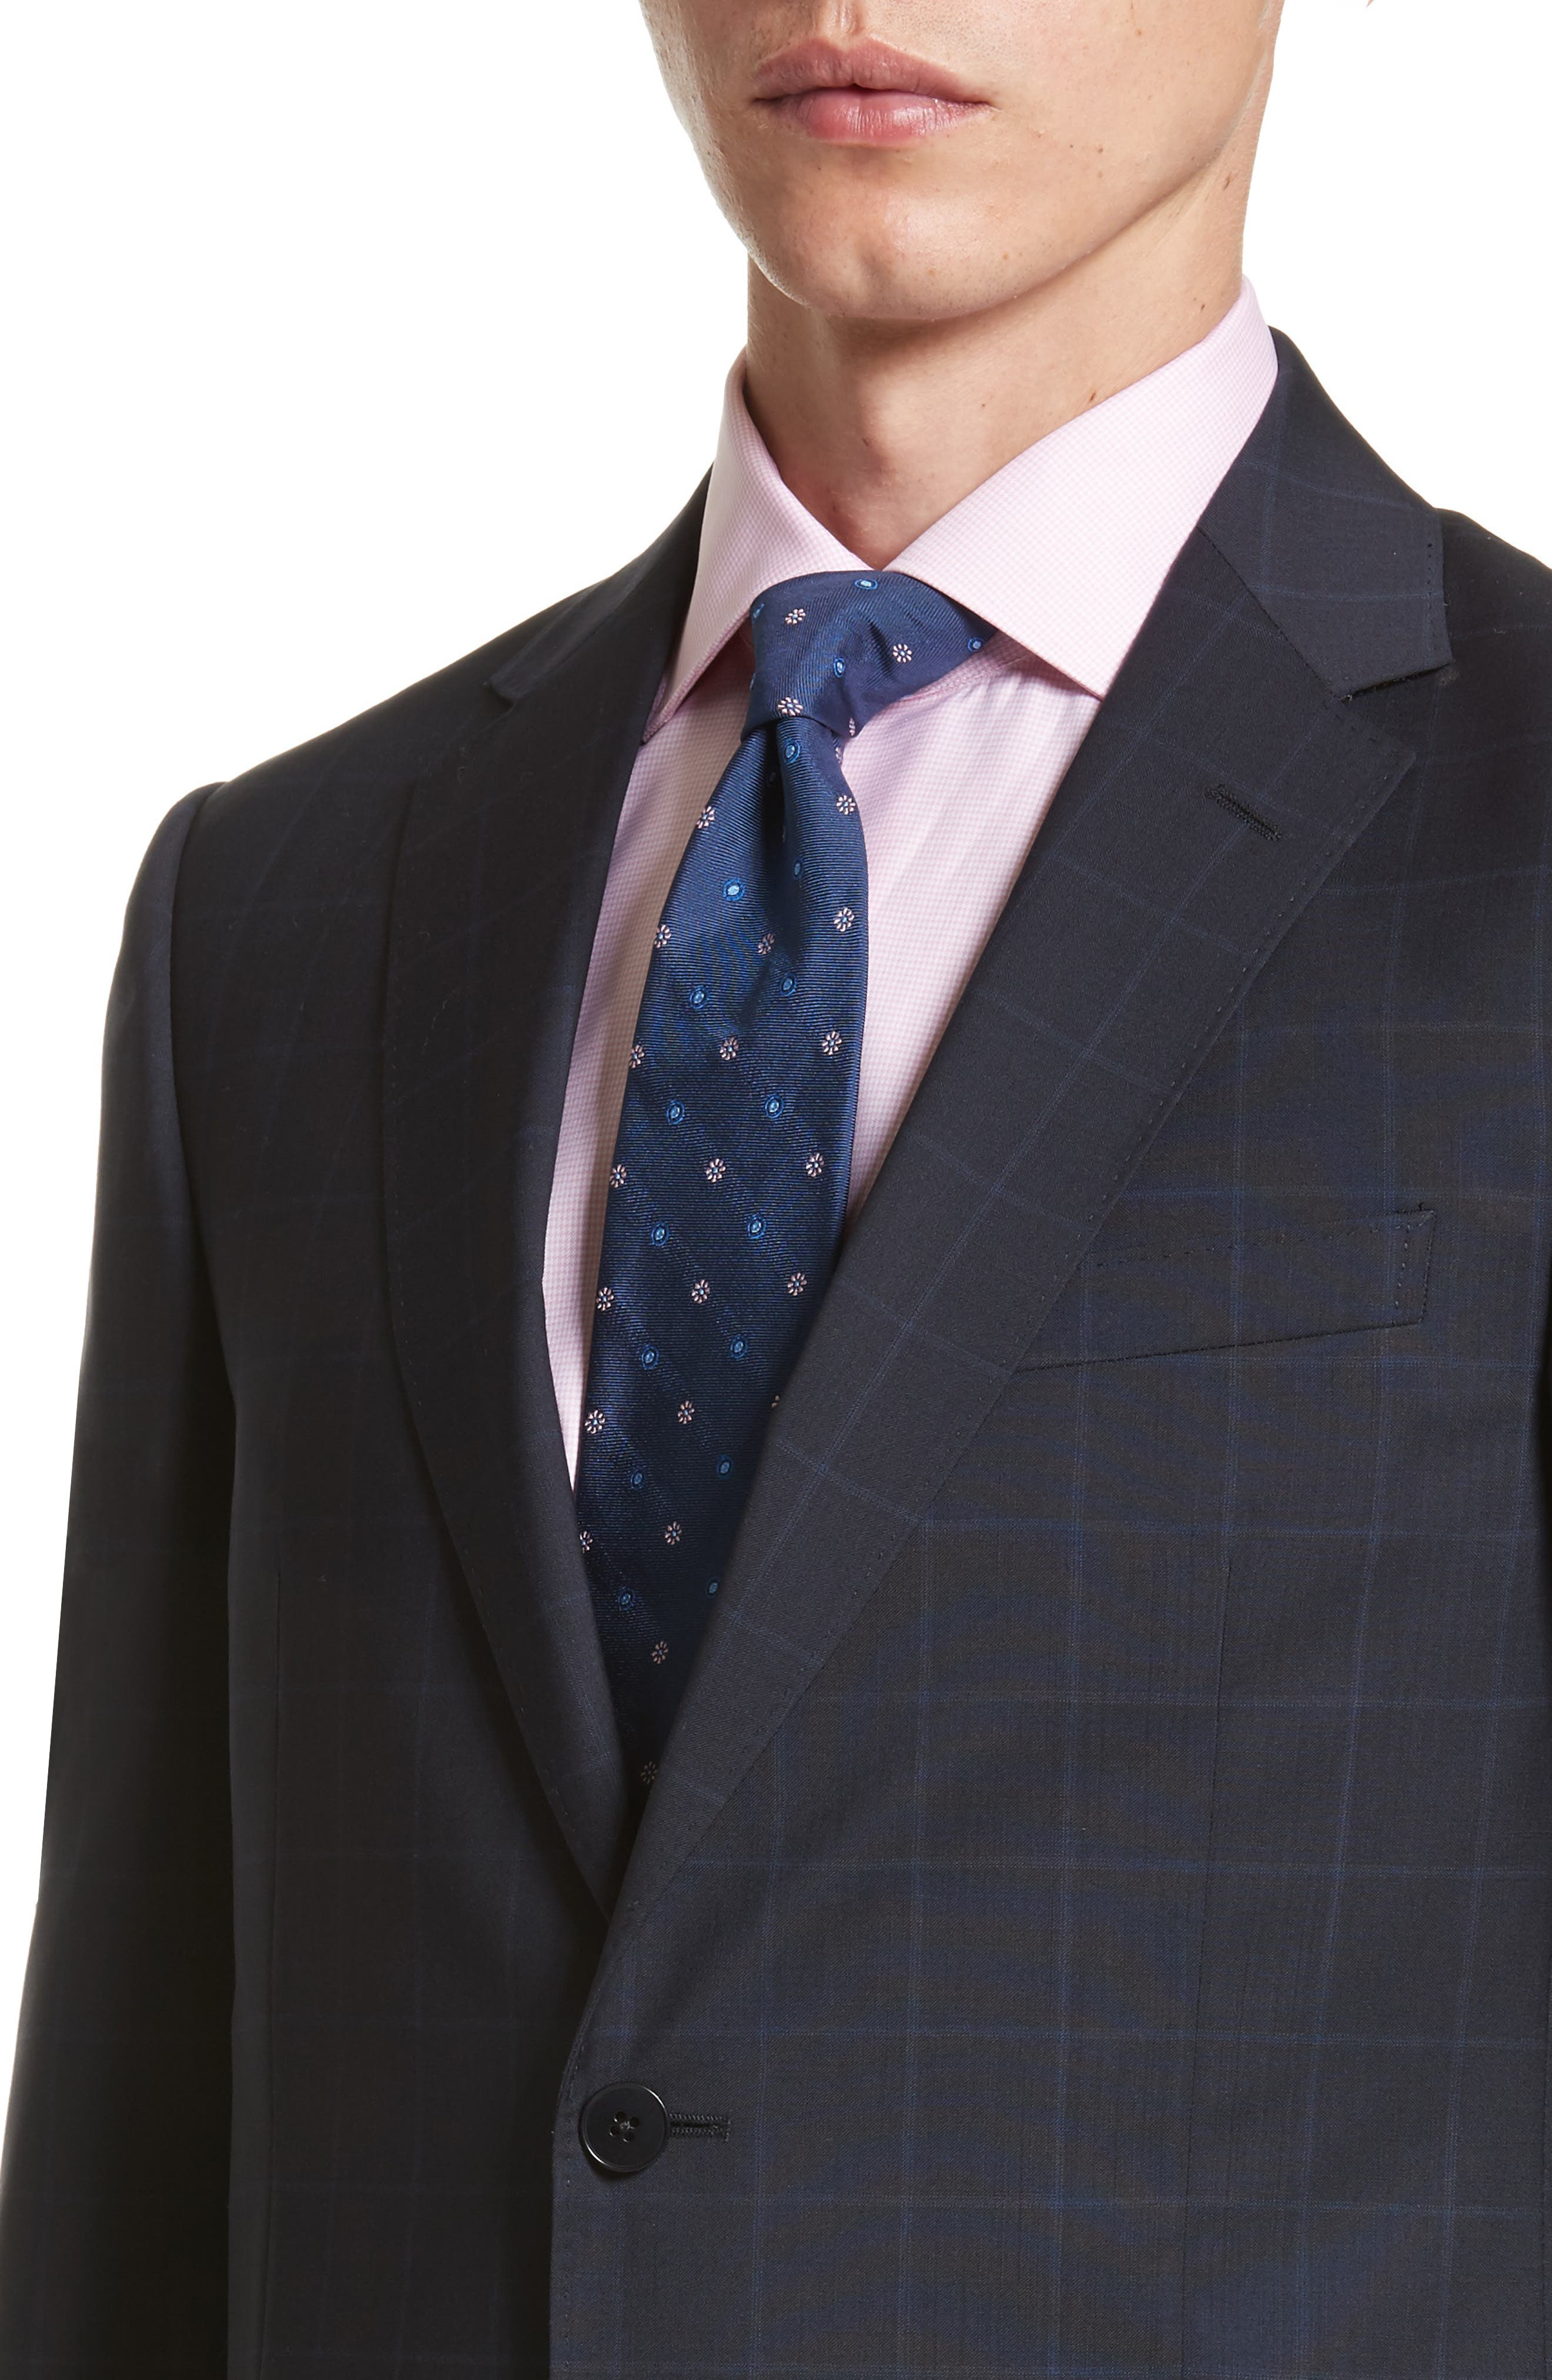 Classic Fit Windowpane Wool Suit,                             Alternate thumbnail 4, color,                             Navy Check